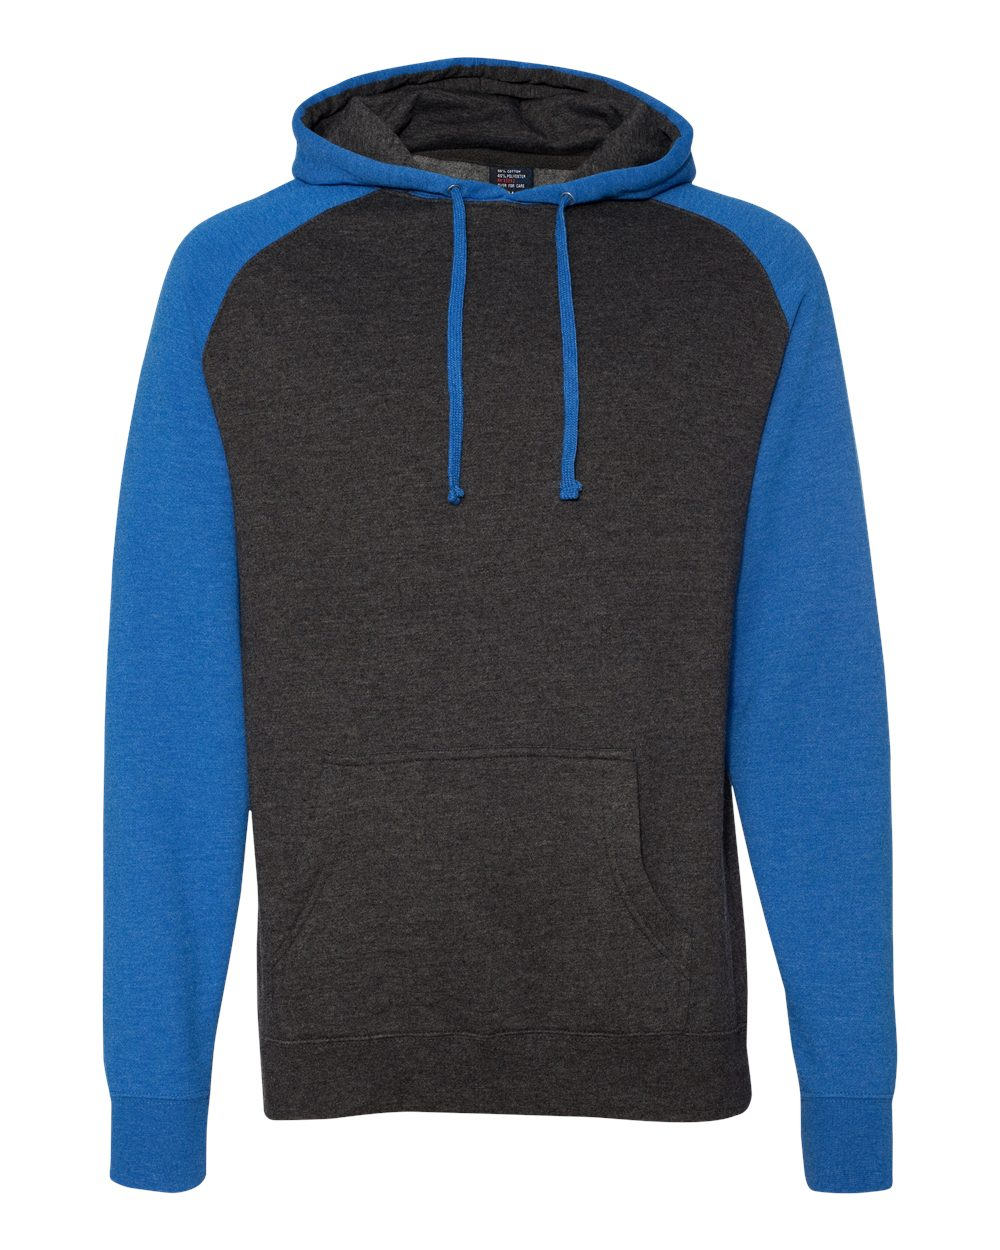 Independent-Trading-Co-Mens-Raglan-Hooded-Pullover-Sweatshirt-IND40RP-up-to-3XL miniature 15